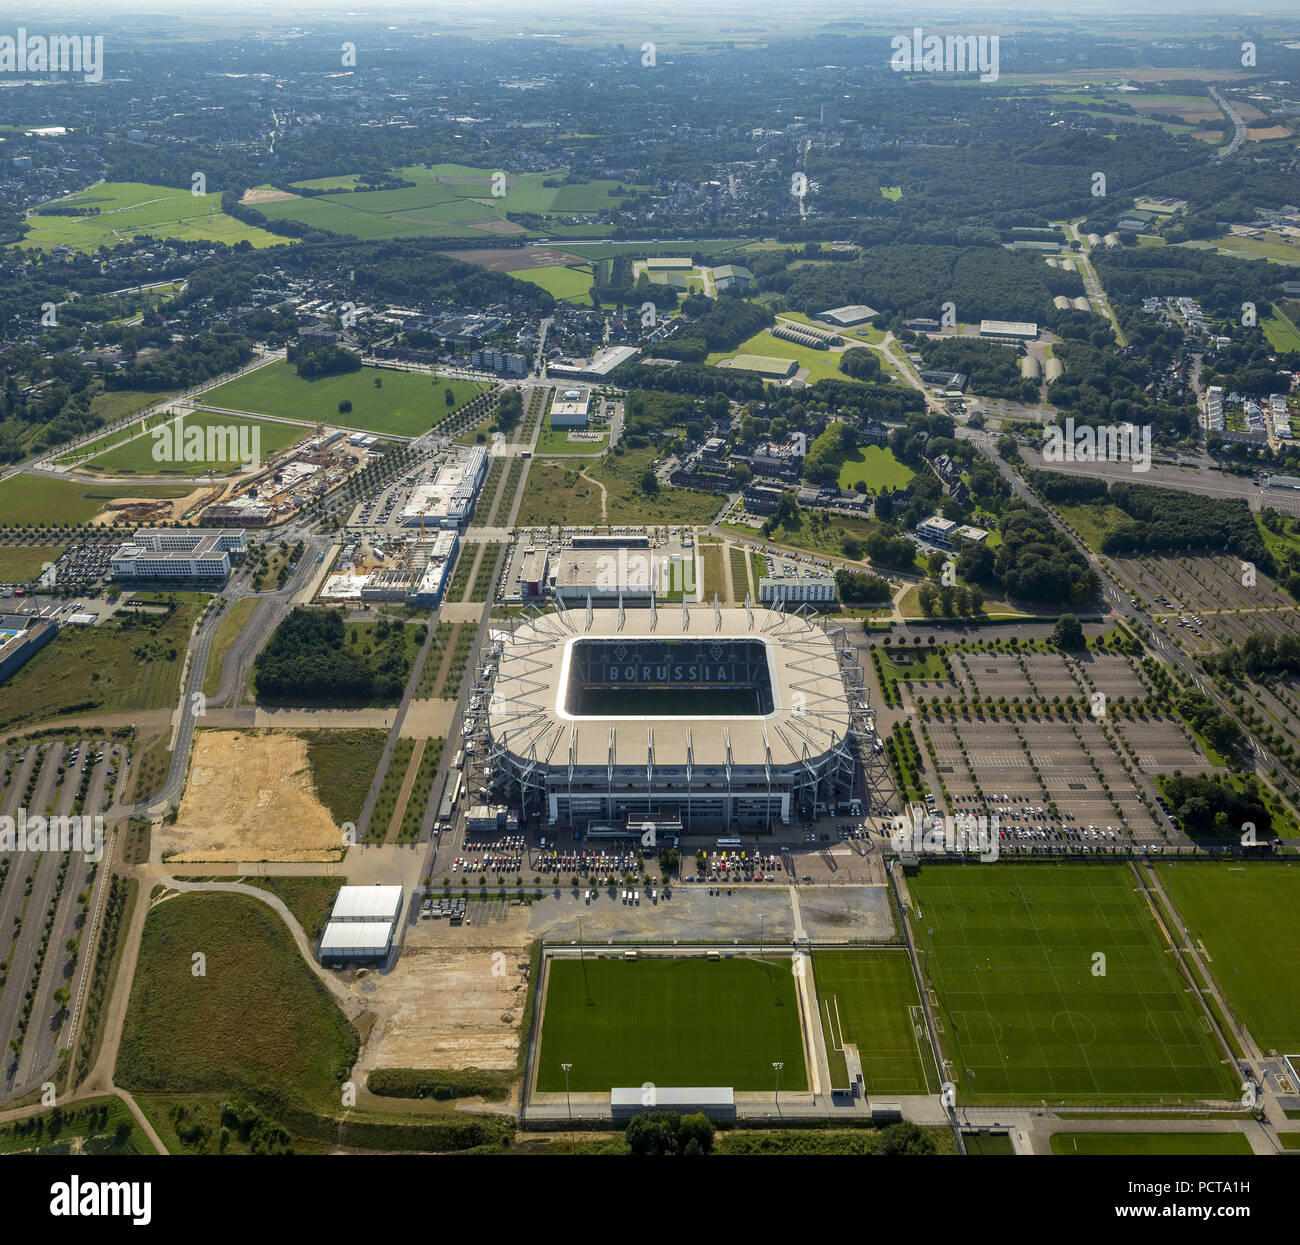 Aerial photo, Mönchengladbach football stadium, BVB Mönchengladbach football club, Borussia-Park, Mönchengladbach, Lower Rhine, North Rhine-Westphalia, Germany - Stock Image